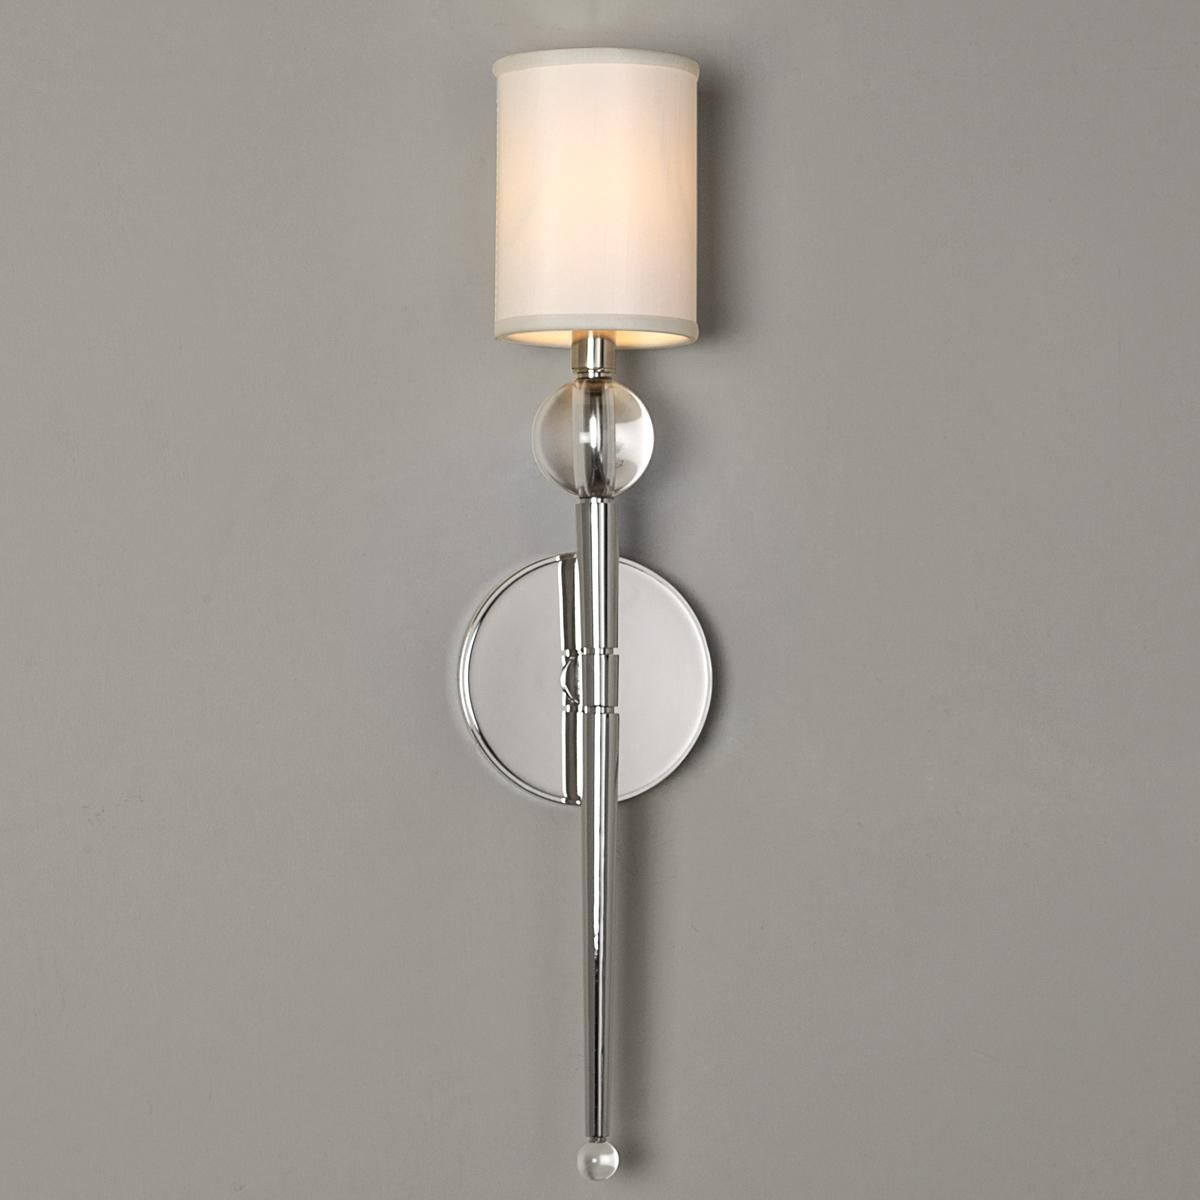 Clear Glass Candle Wall Sconces : Crystal Ball and Elongated Torch Wall Sconce Crystal ball, Torches and Wall sconces